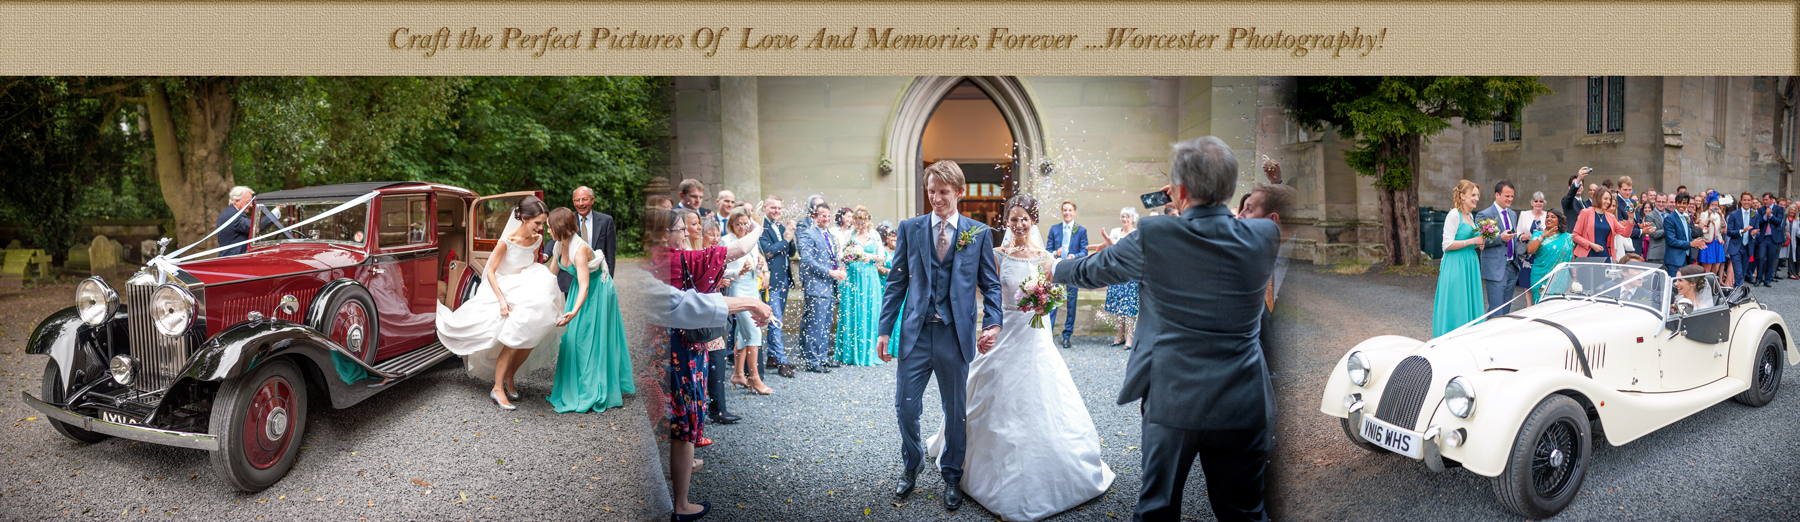 Wedding photography pricing Worcester Worcestershire Herefordshire Midlands